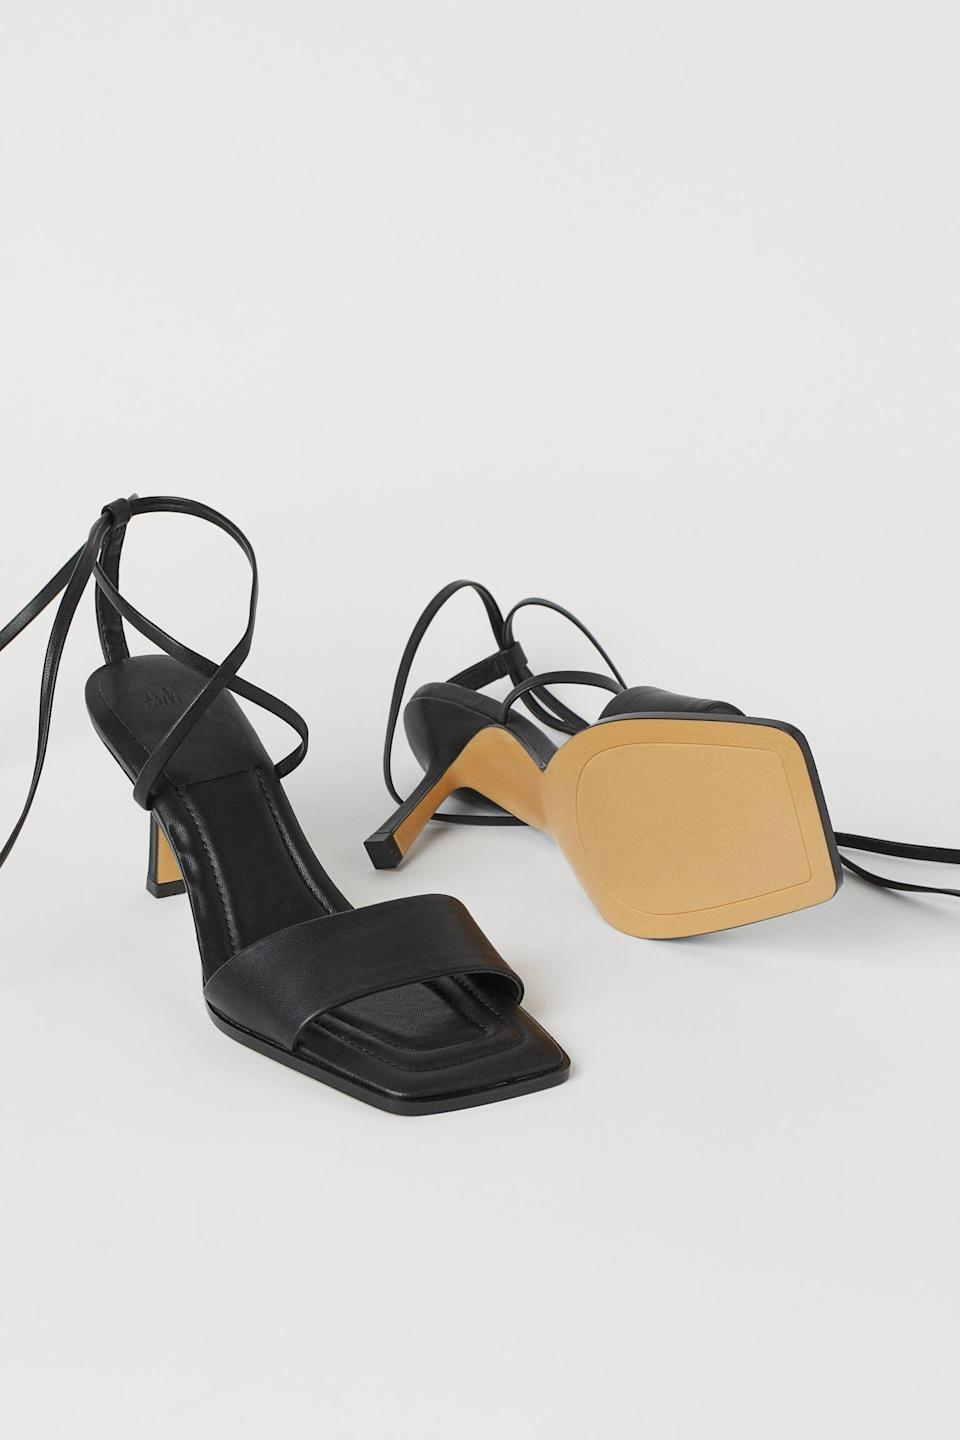 <p>These <span>Tie-strap Sandals</span> ($35) will pair nicely with your favorite Bermuda shorts, or polished ankle-length trousers.</p>